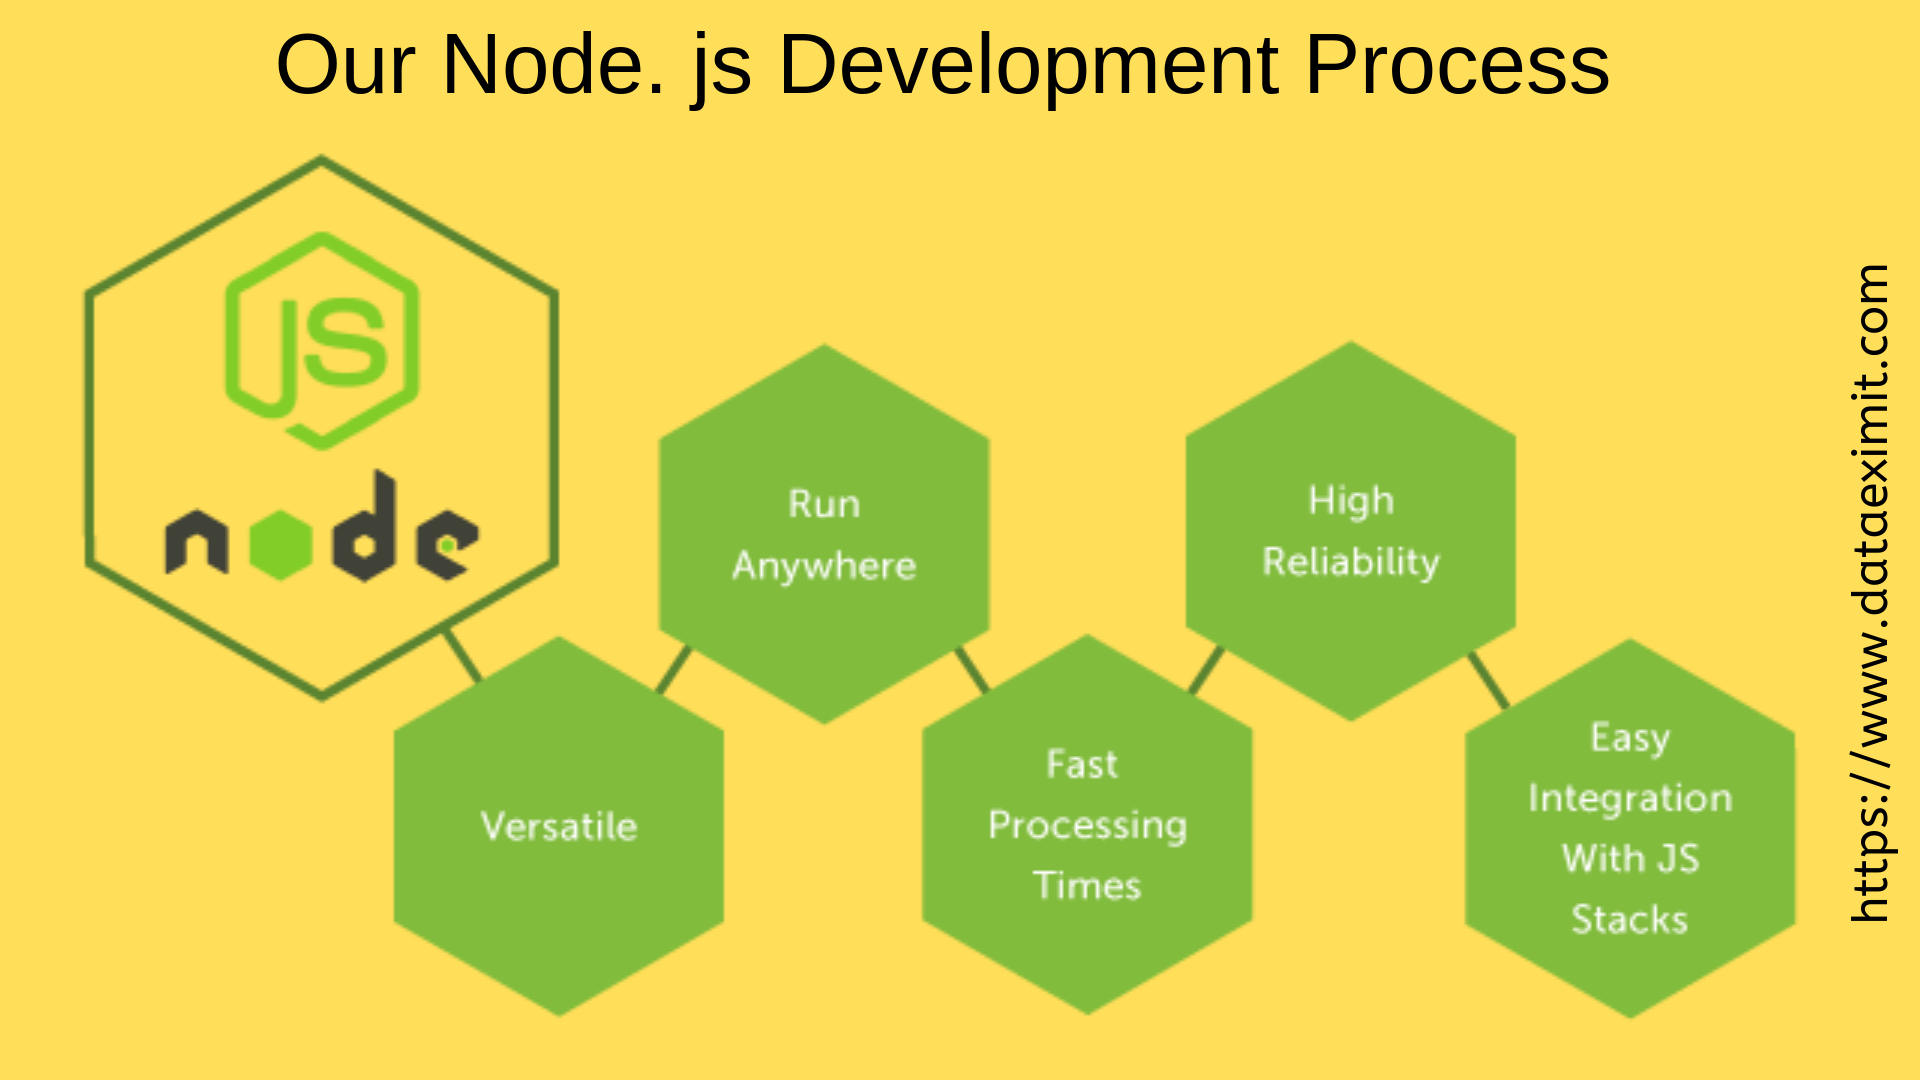 What is the best Node js development company in Lviv? - Quora